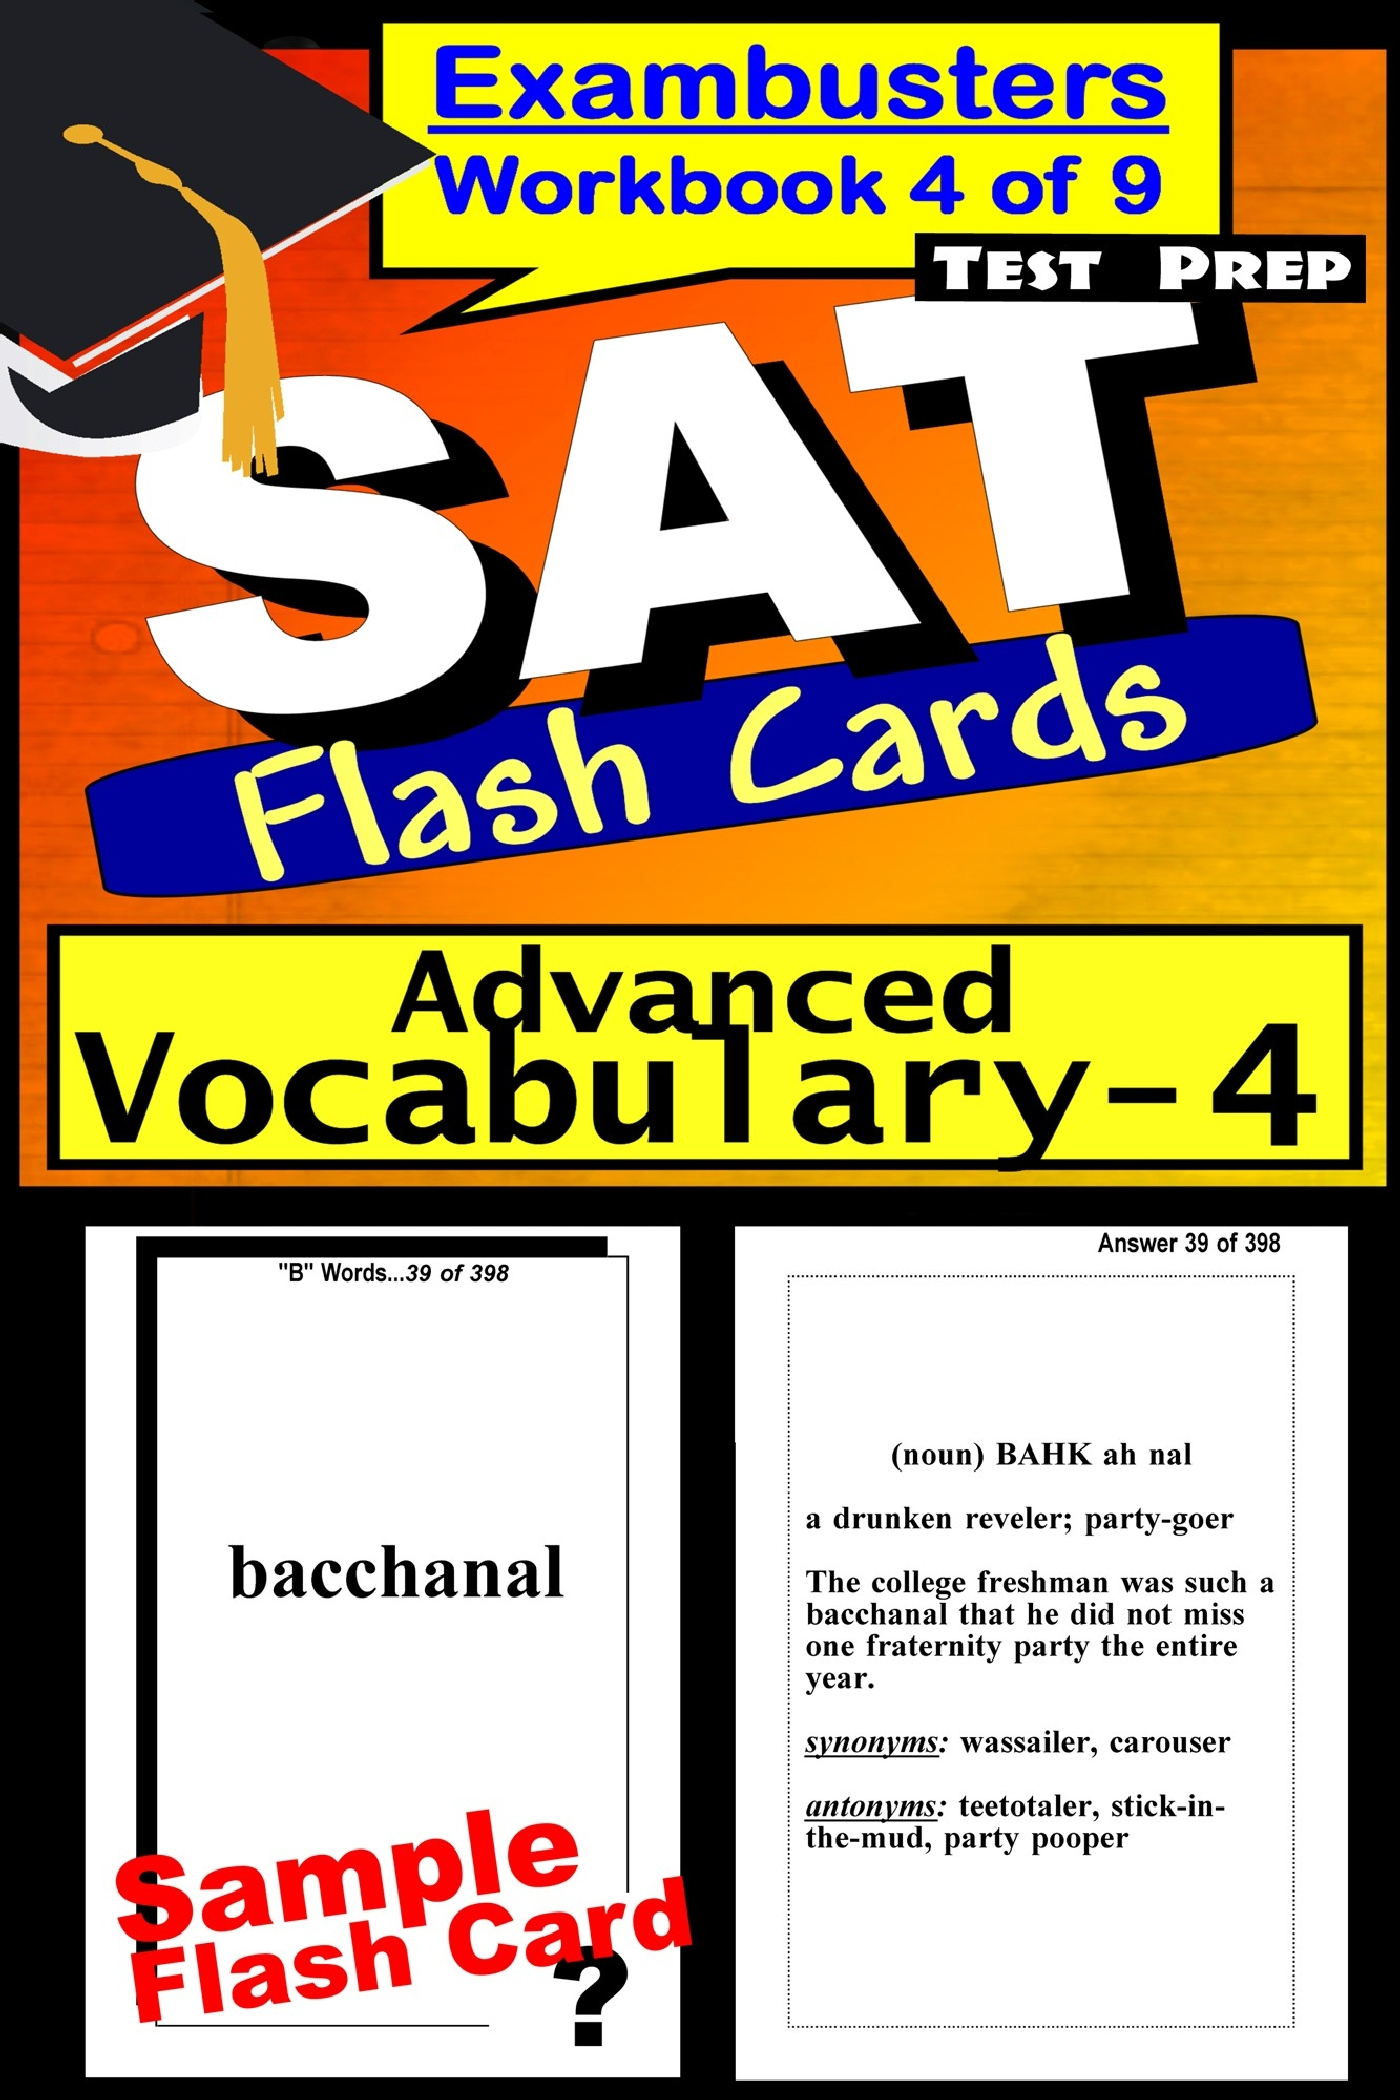 SAT Test Prep Advanced Vocabulary 4 Review--Exambusters Flash Cards--Workbook 4 of 9: SAT Exam Study Guide